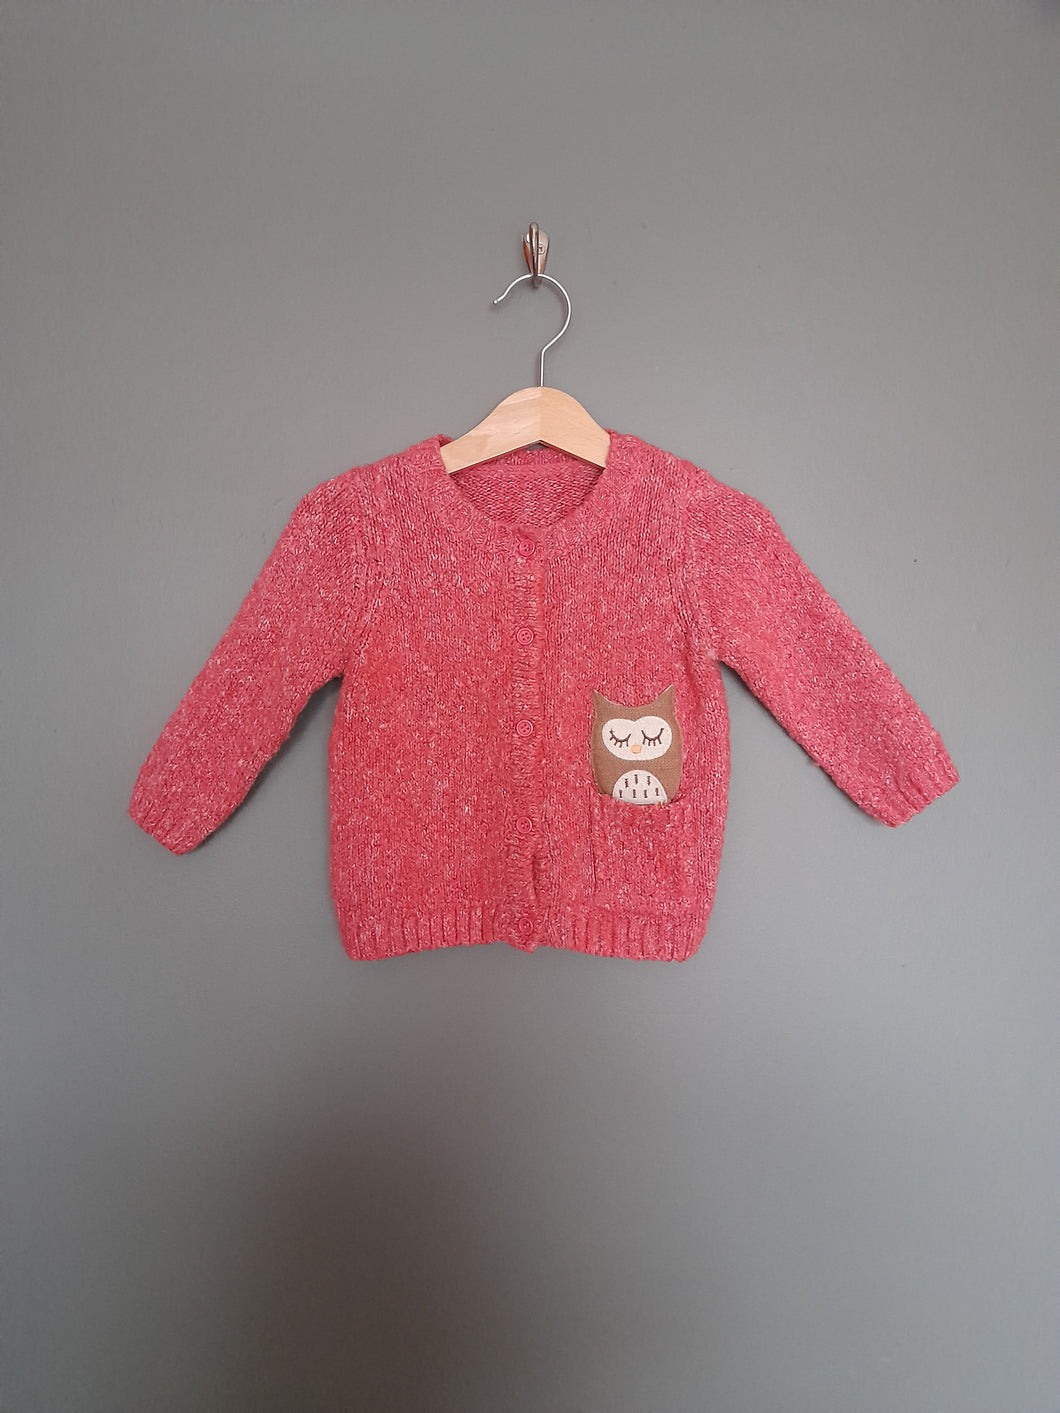 9-12 months Pink knitted cardigan with owl - Matalan